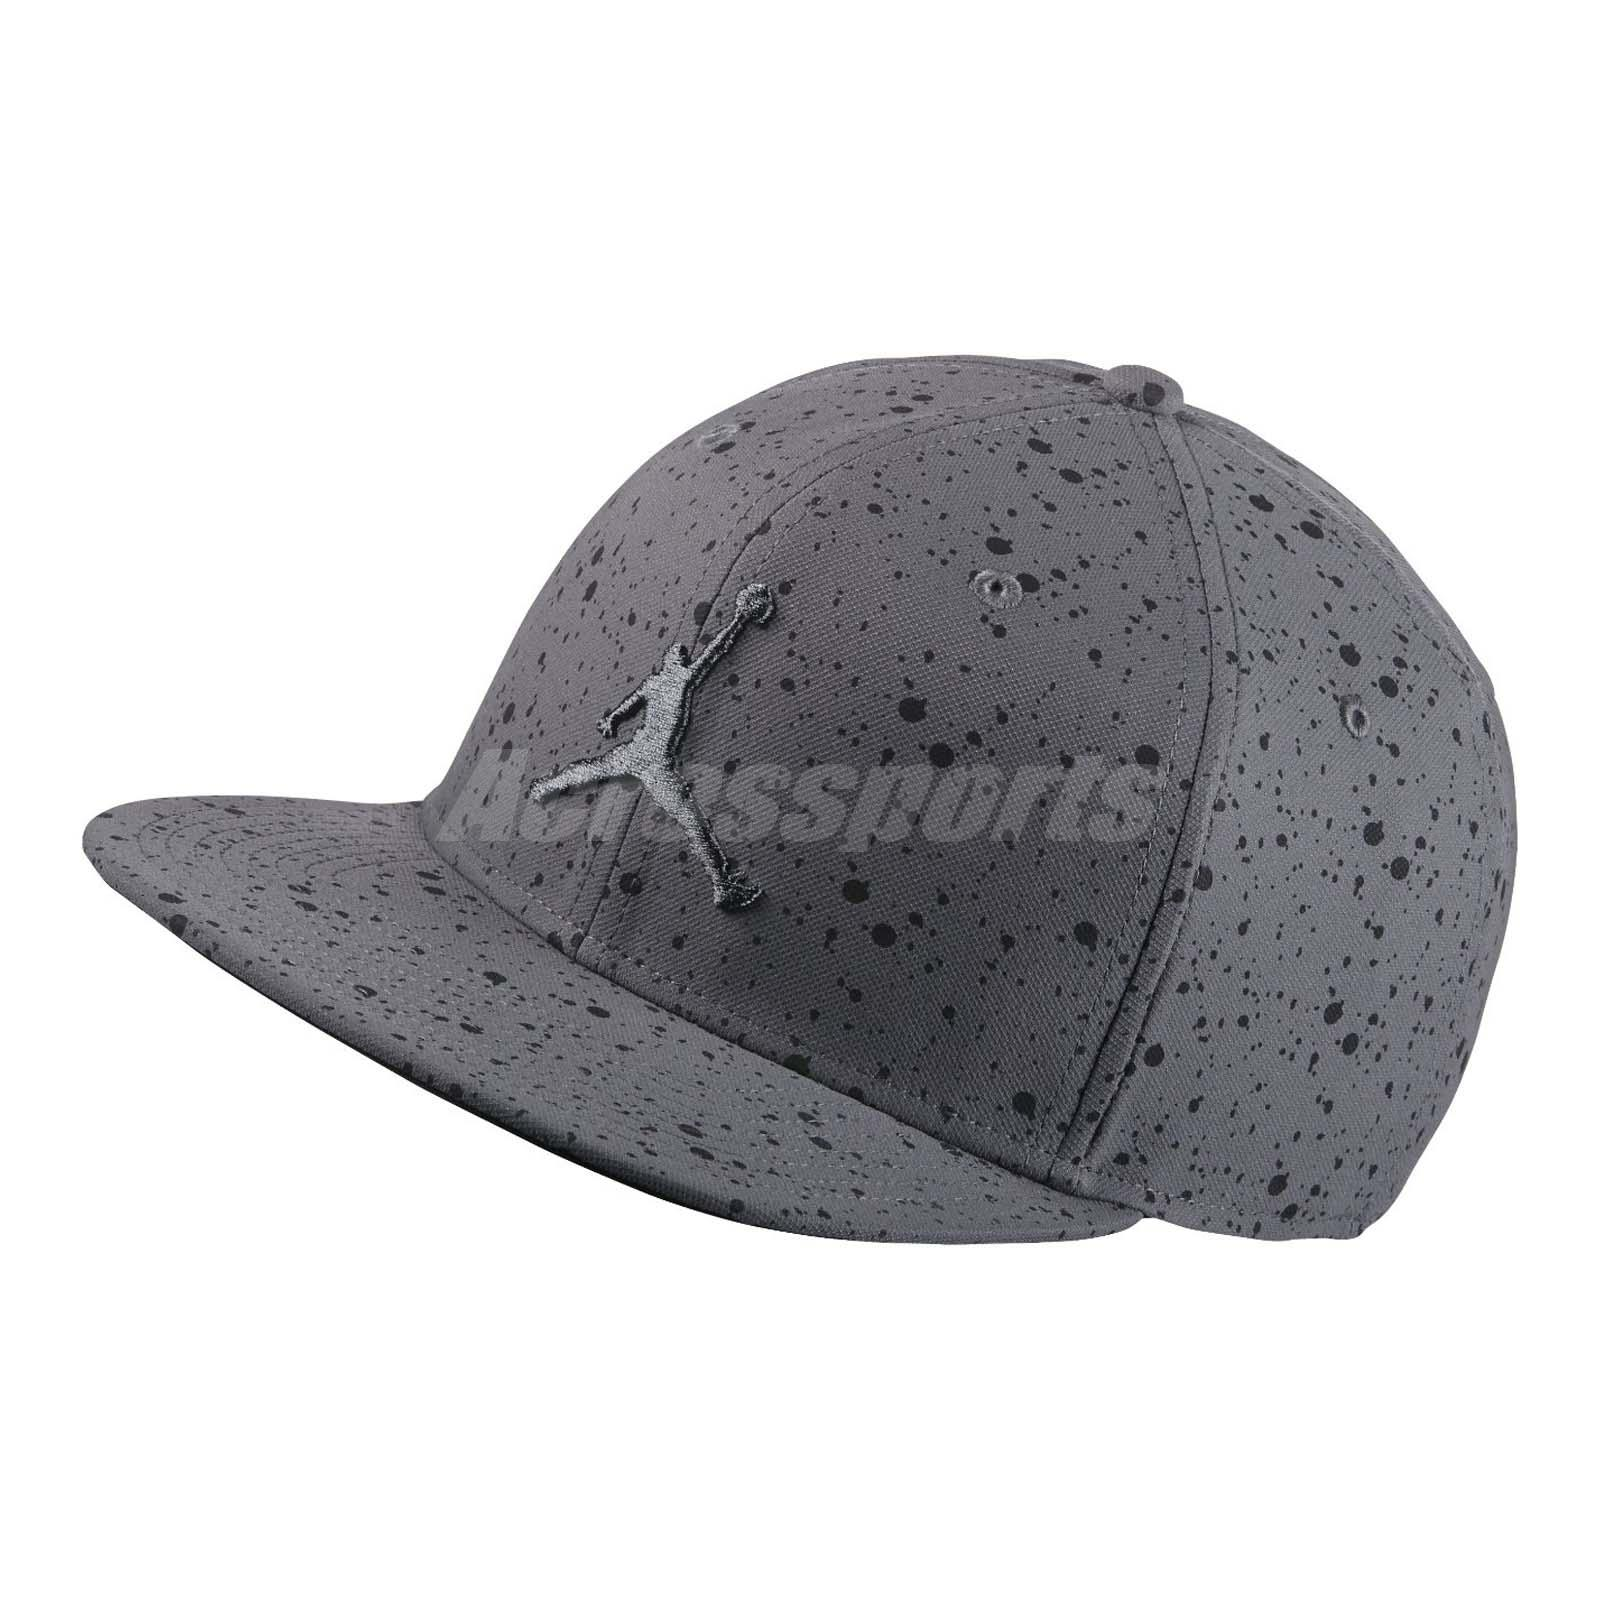 ... black 801767 010 5b057 aadef  best price nike air jordan speckle print  snapback jumpman baseball cap hat grey 821830 021 da6b9 4b1ce7abc1f1